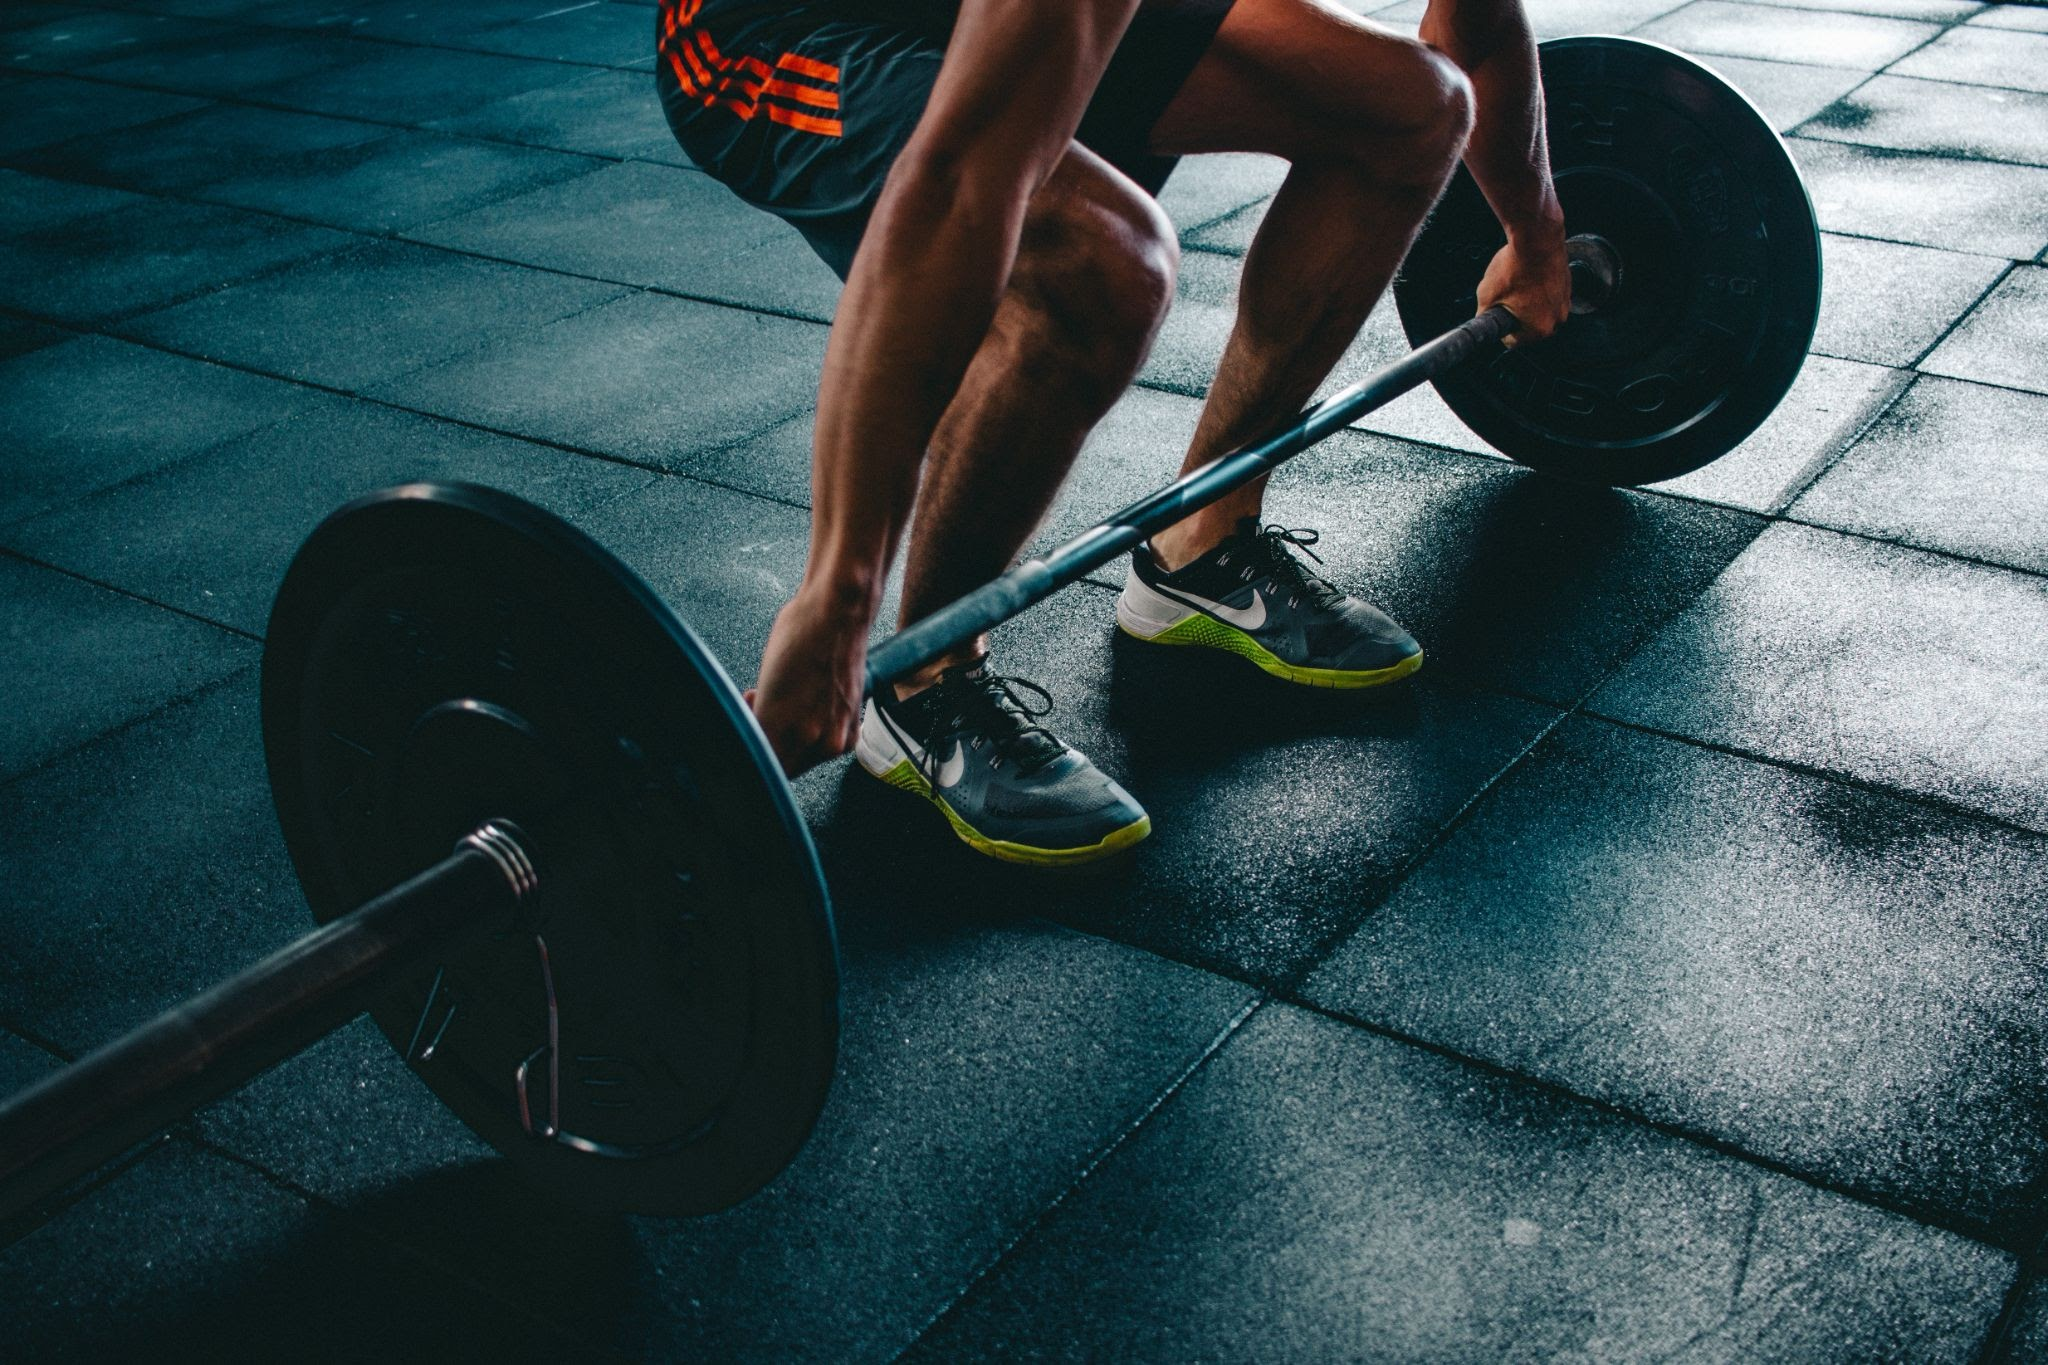 Two New Studies Will Change the Way You Look at Strength Training and Cycling Performance